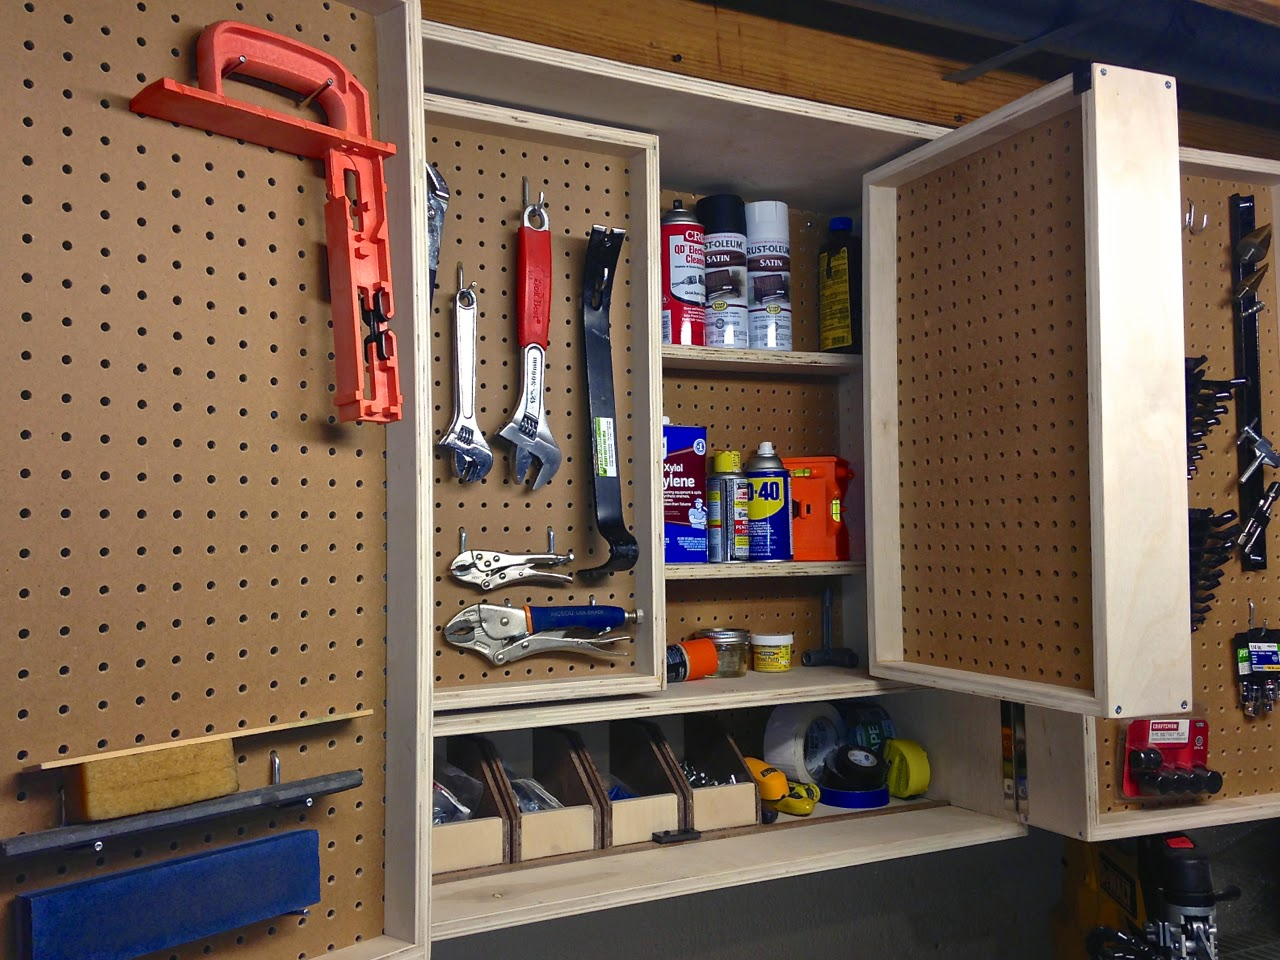 The Project Lady: Pegboard Tool Storage Cabinet Project